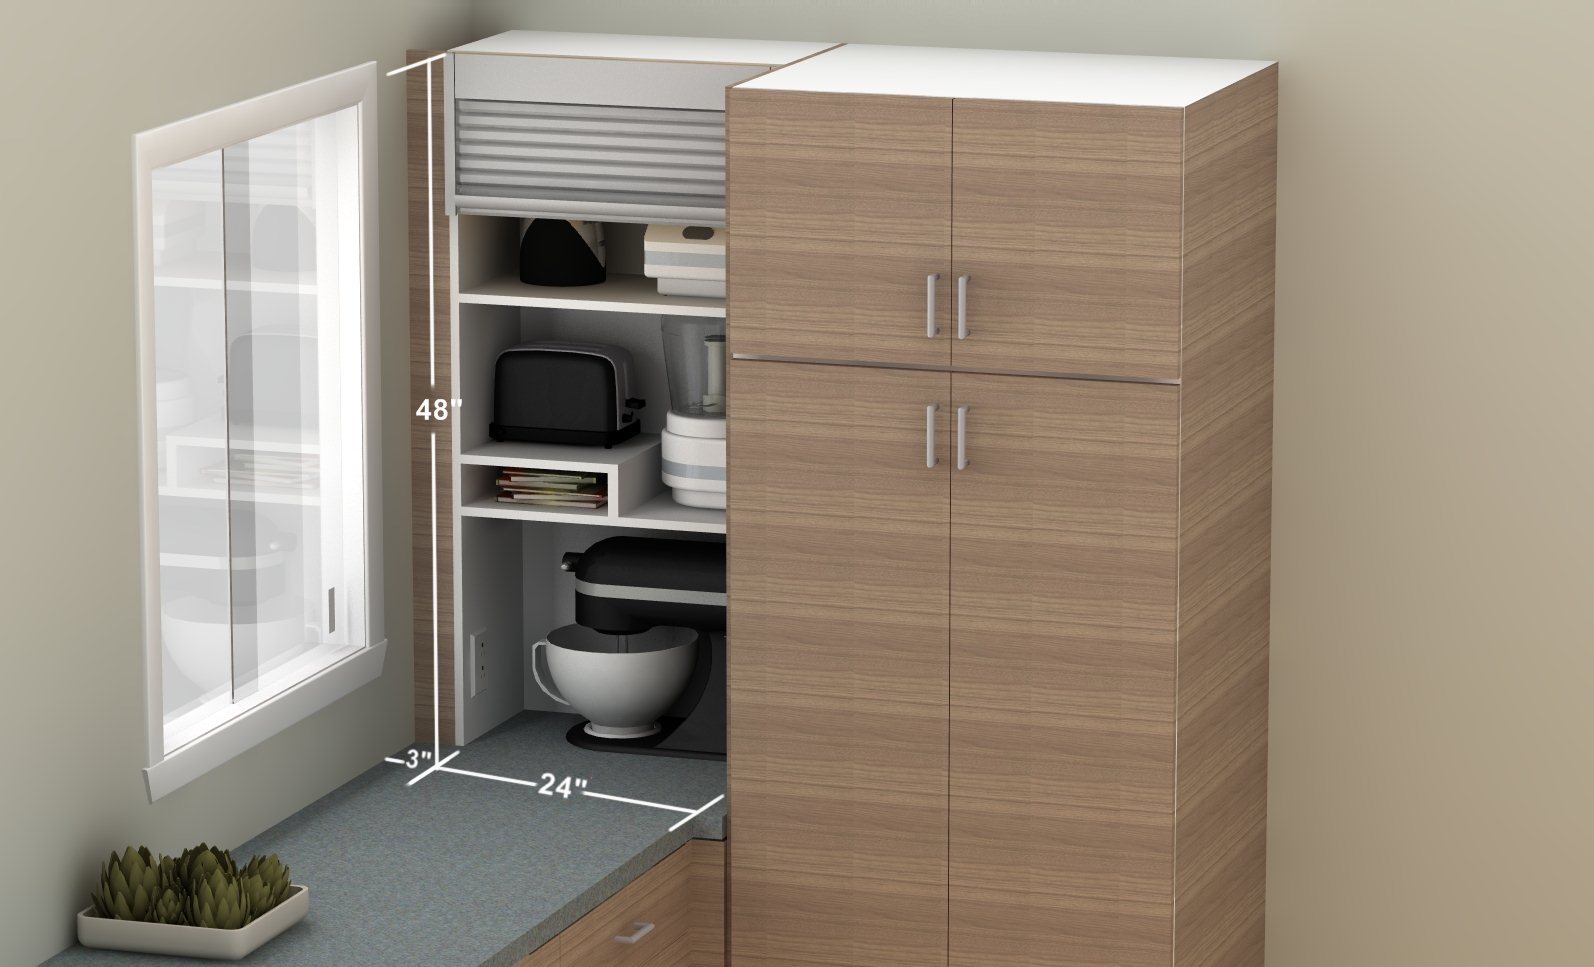 Rolladenschrank Küche Ikea How To Hide Smaller Appliances In Your Ikea Kitchen